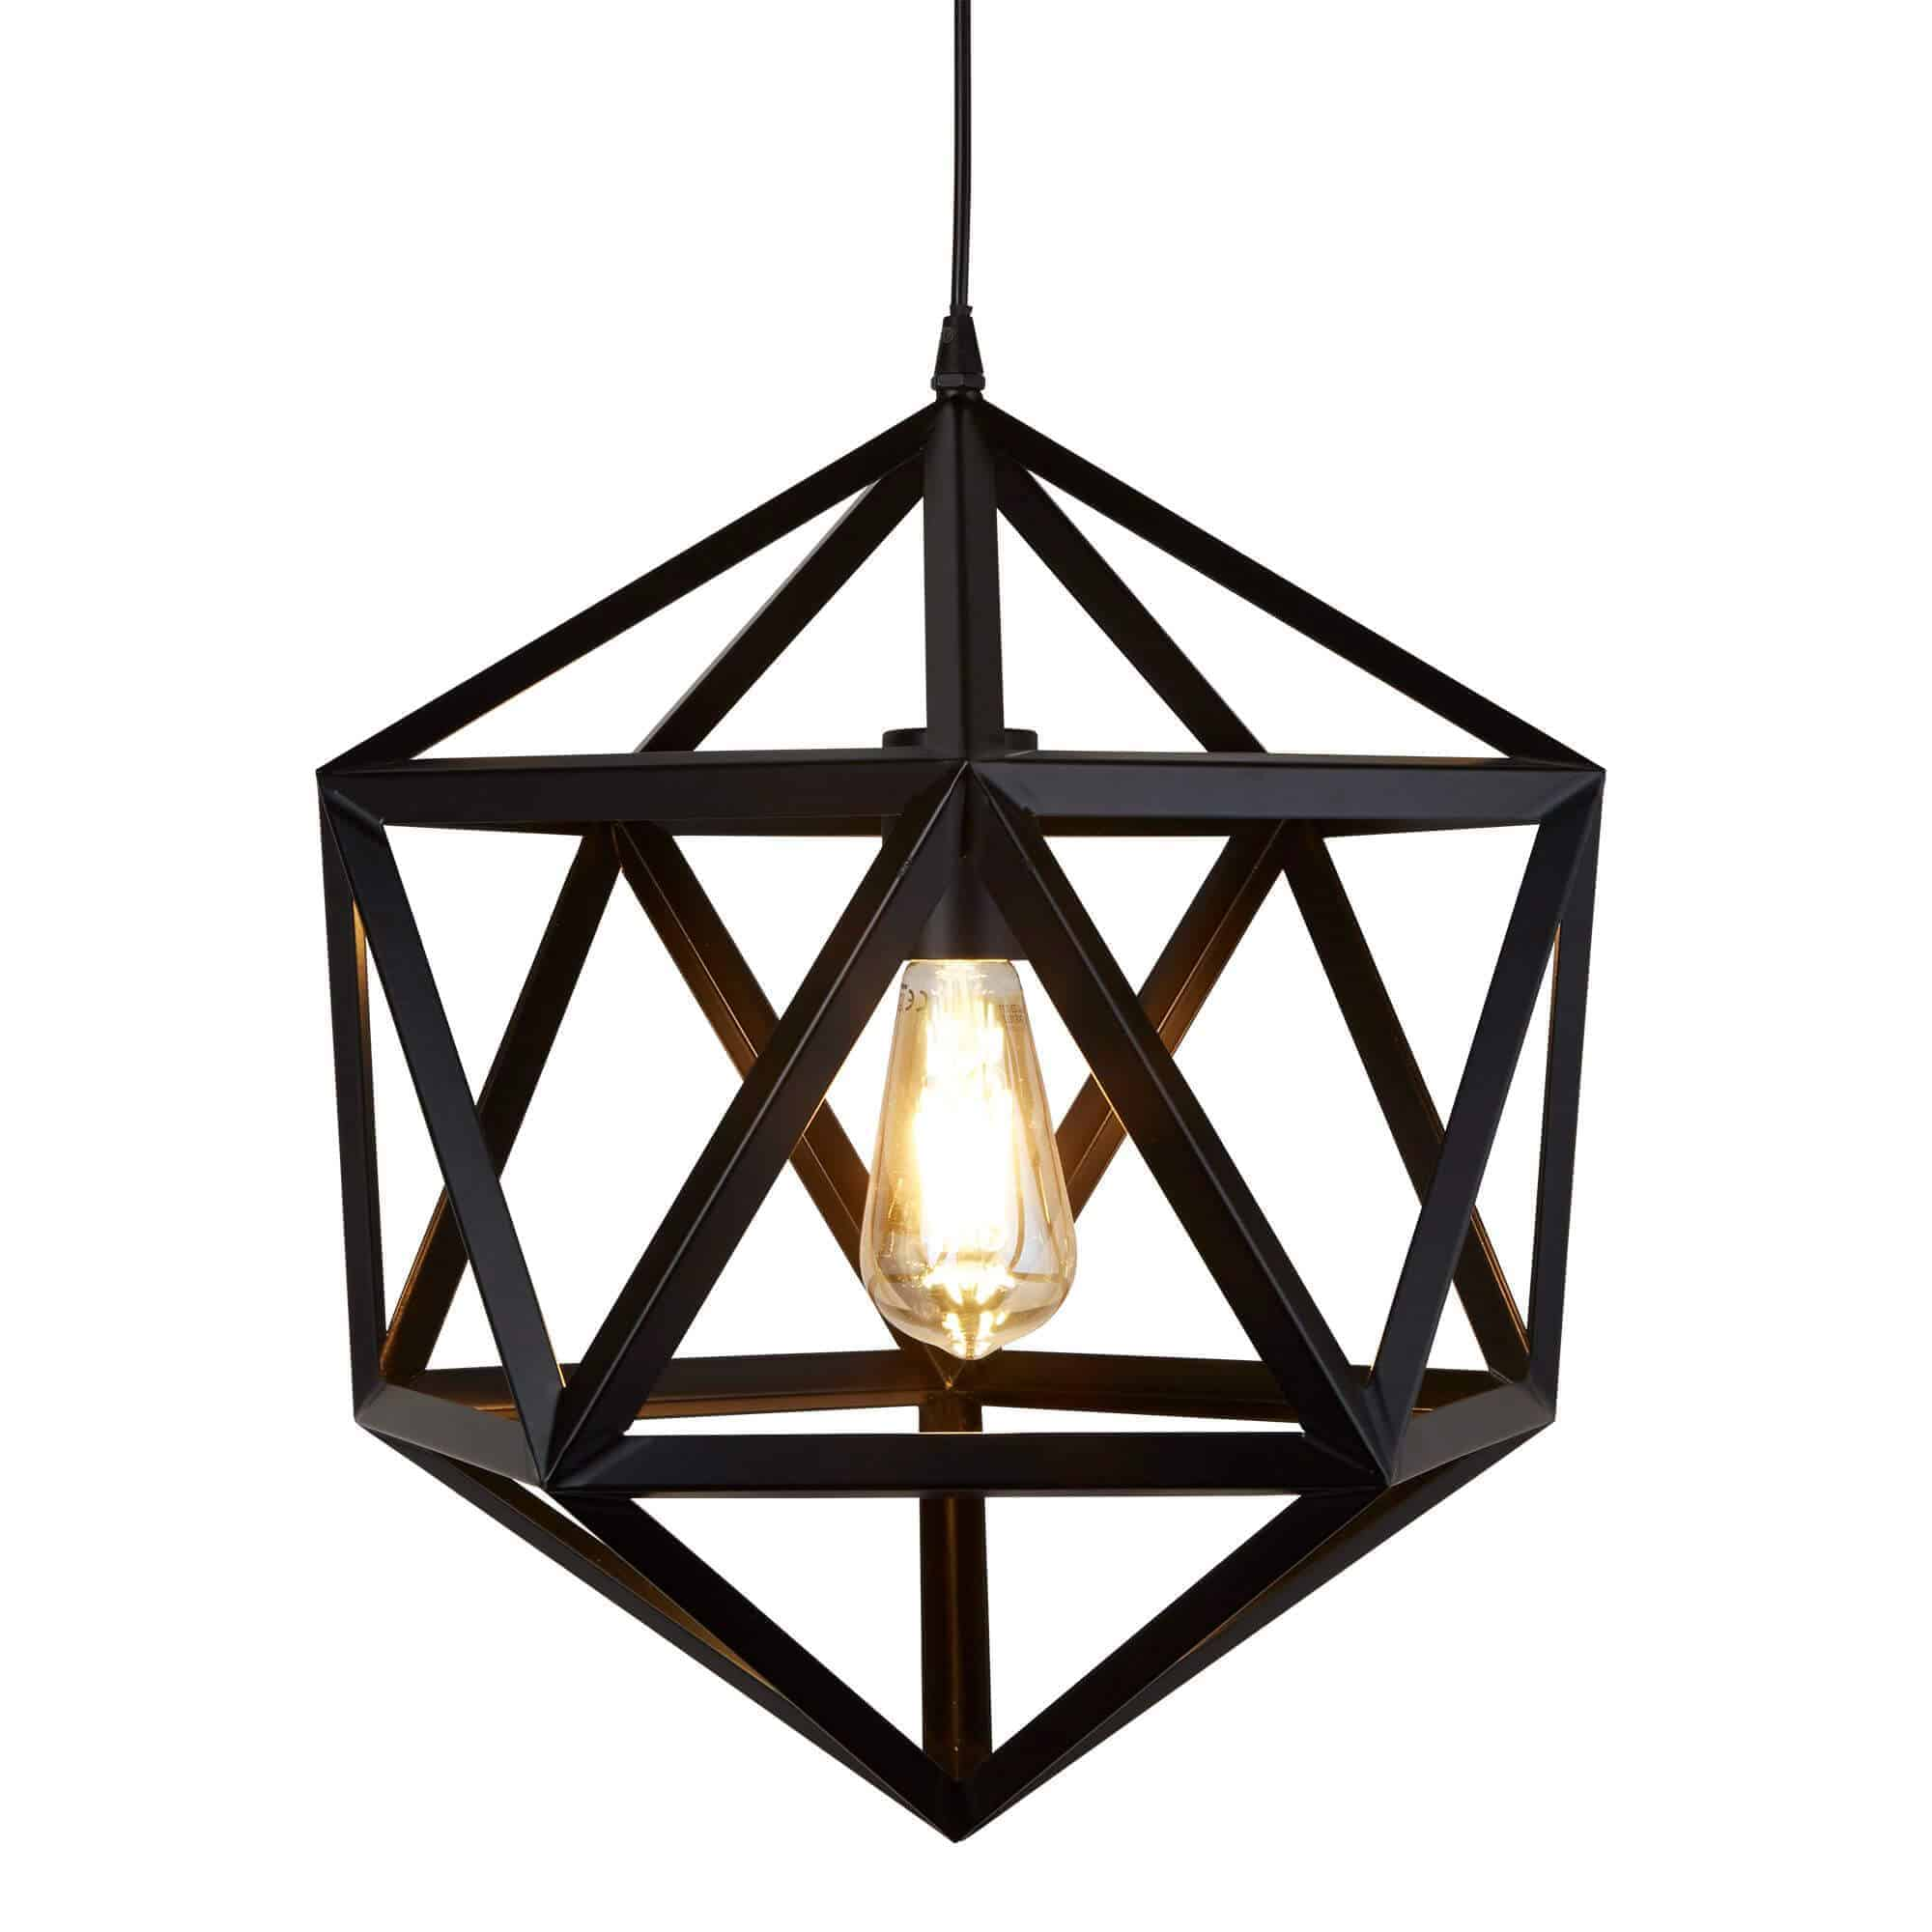 5701BK – Searchlight Cube Matt Black 1 Light Geometric Pendant